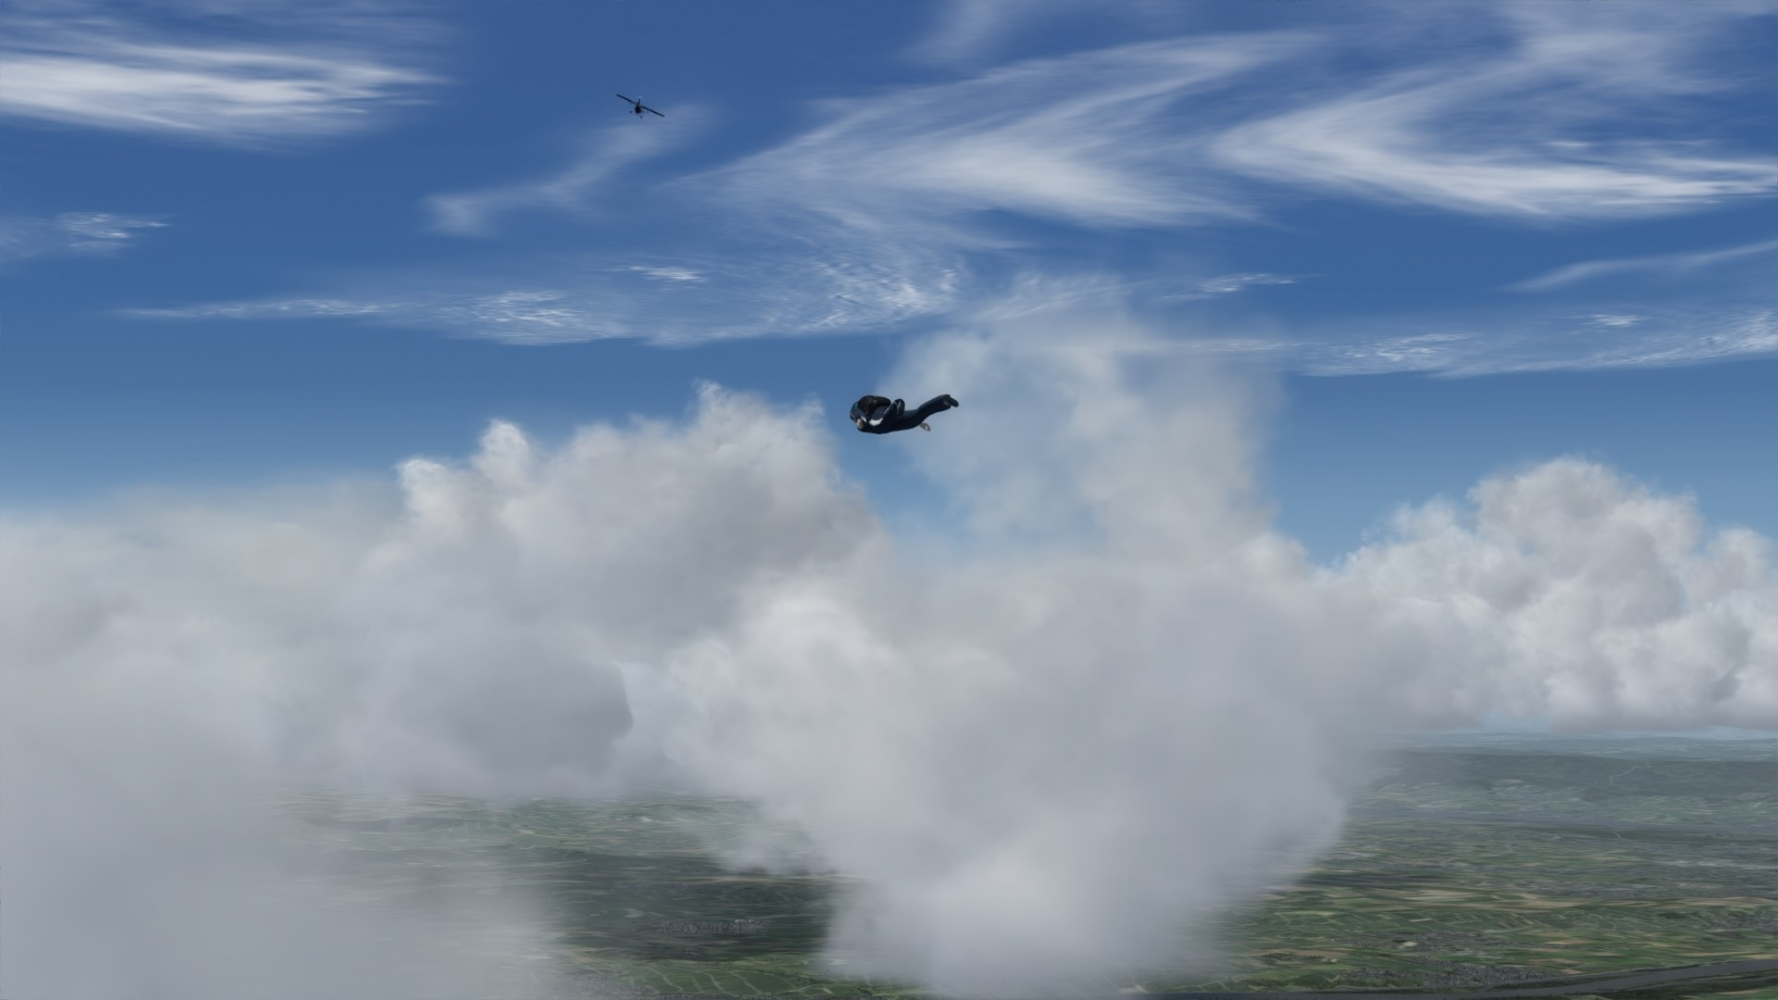 p3dv4_payload_manager_skydiver_1.jpg